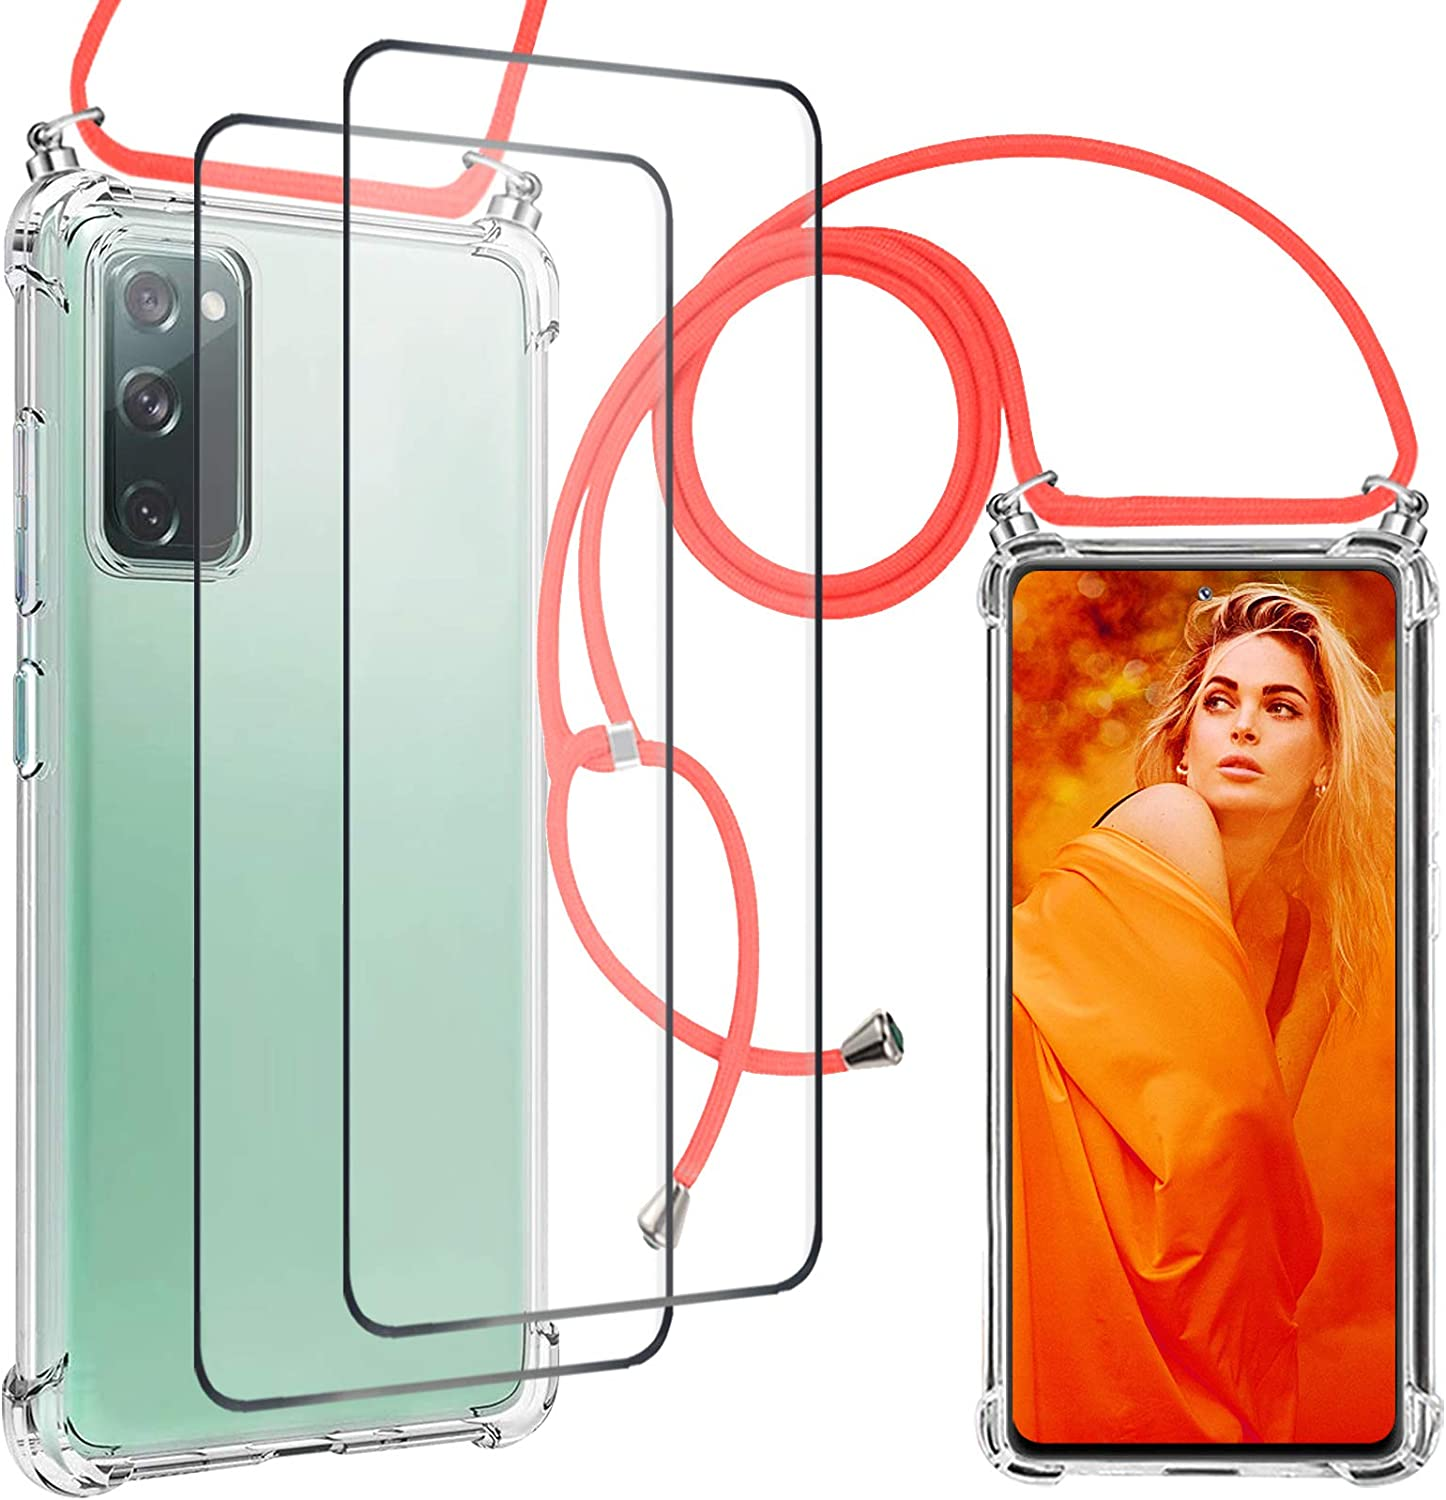 S20 FE 5G Case with Screen Protector Strap Crossbody Compatible with Samsung Galaxy S20 FE 5G Case with Lanyard Clear Transparent TPU Phone Cases Tether Safety Strap Cell Phone Cover